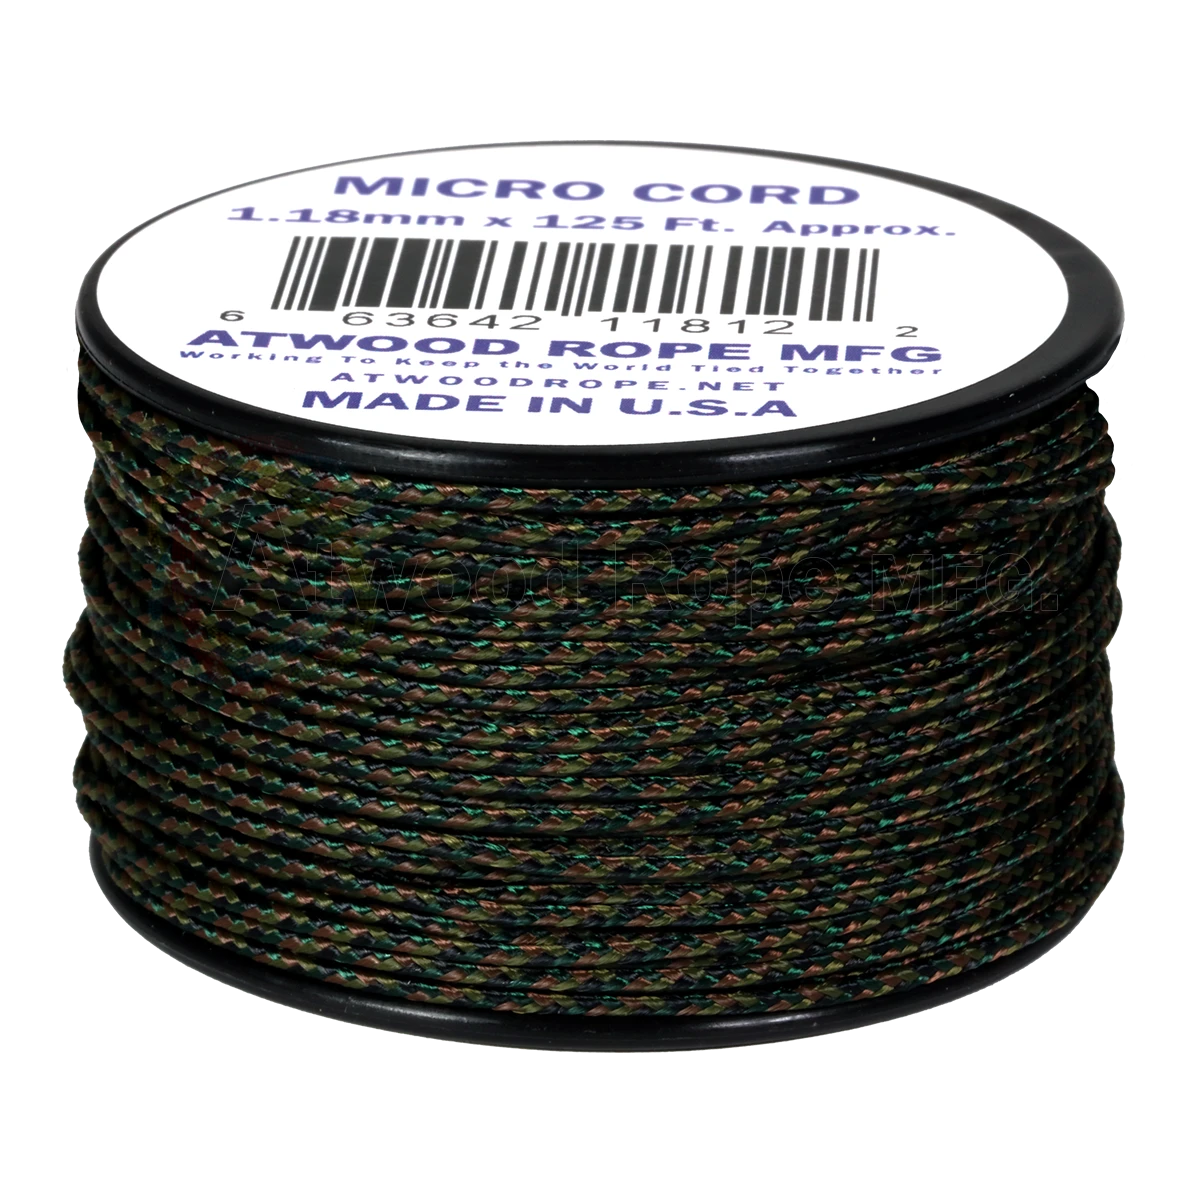 Dây Micro Cord 1.18mm – 100ft – WoodLand